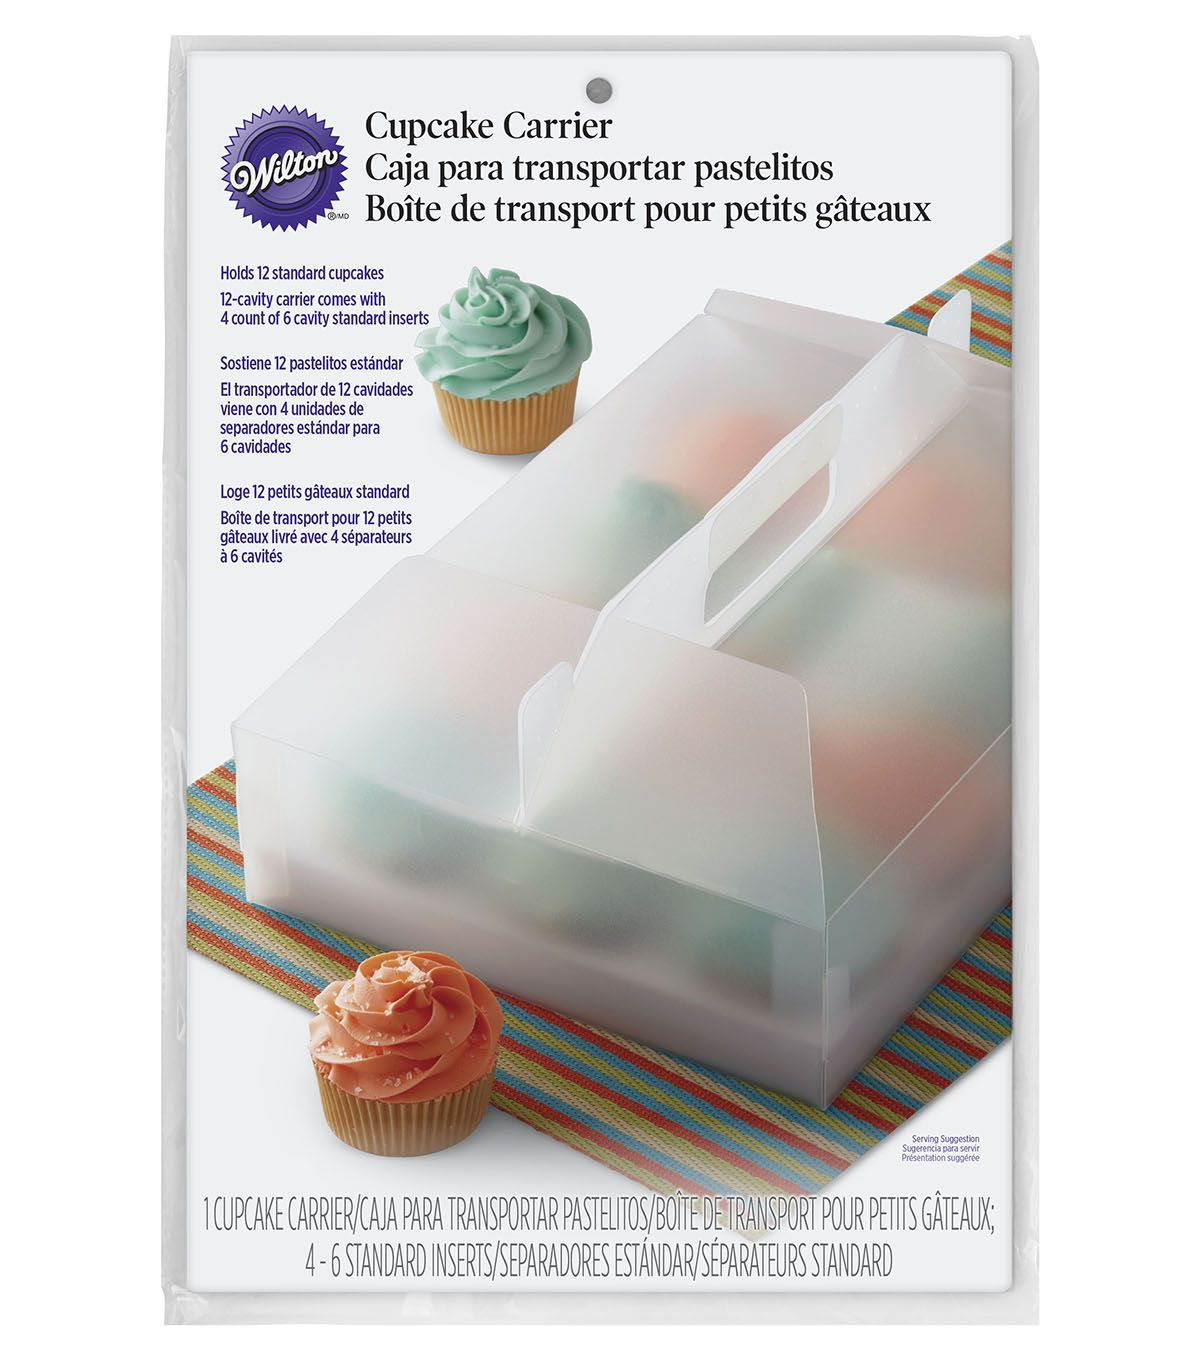 Truck Cups Boxes You Choose Bags Wilton Doughnut Stand Display /& Packaging